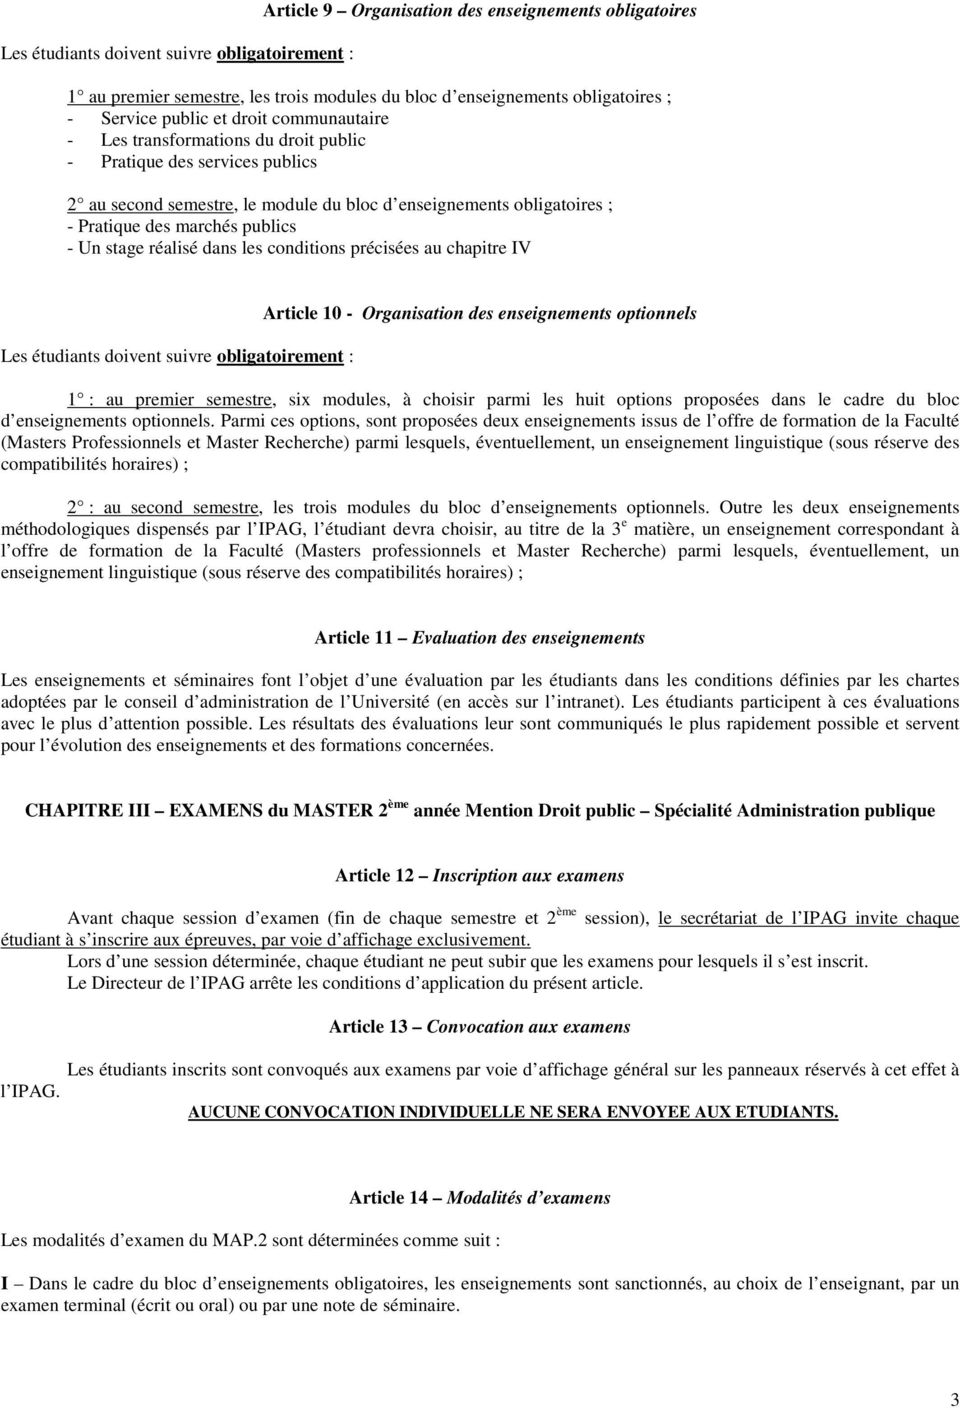 stage réalisé dans les conditions précisées au chapitre IV Les étudiants doivent suivre obligatoirement : Article 10 - Organisation des enseignements optionnels 1 : au premier semestre, six modules,